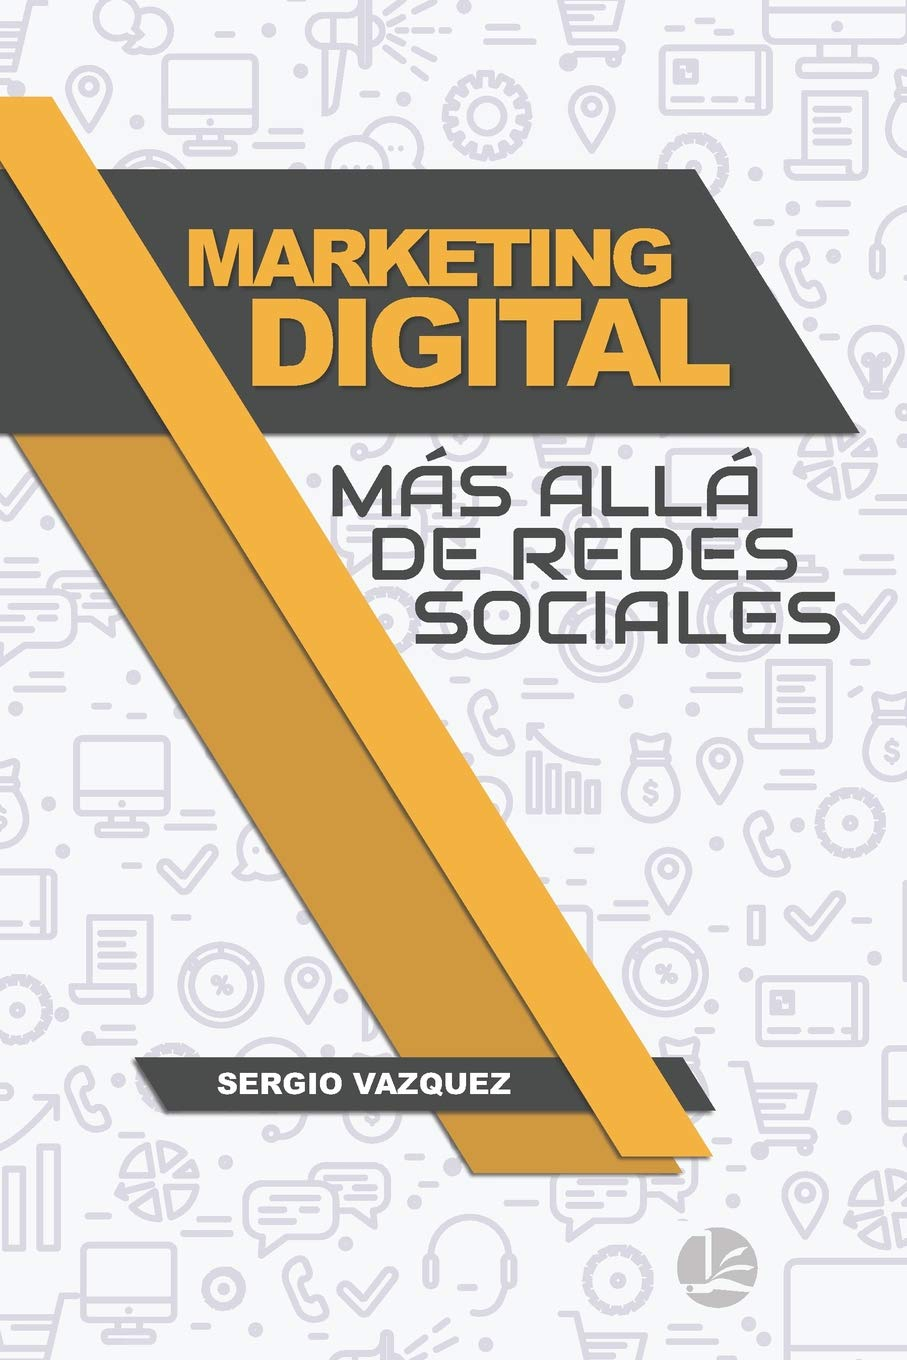 Marketing Digital más allá de Redes Sociales: Amazon.es: Sergio Vazquez: Libros